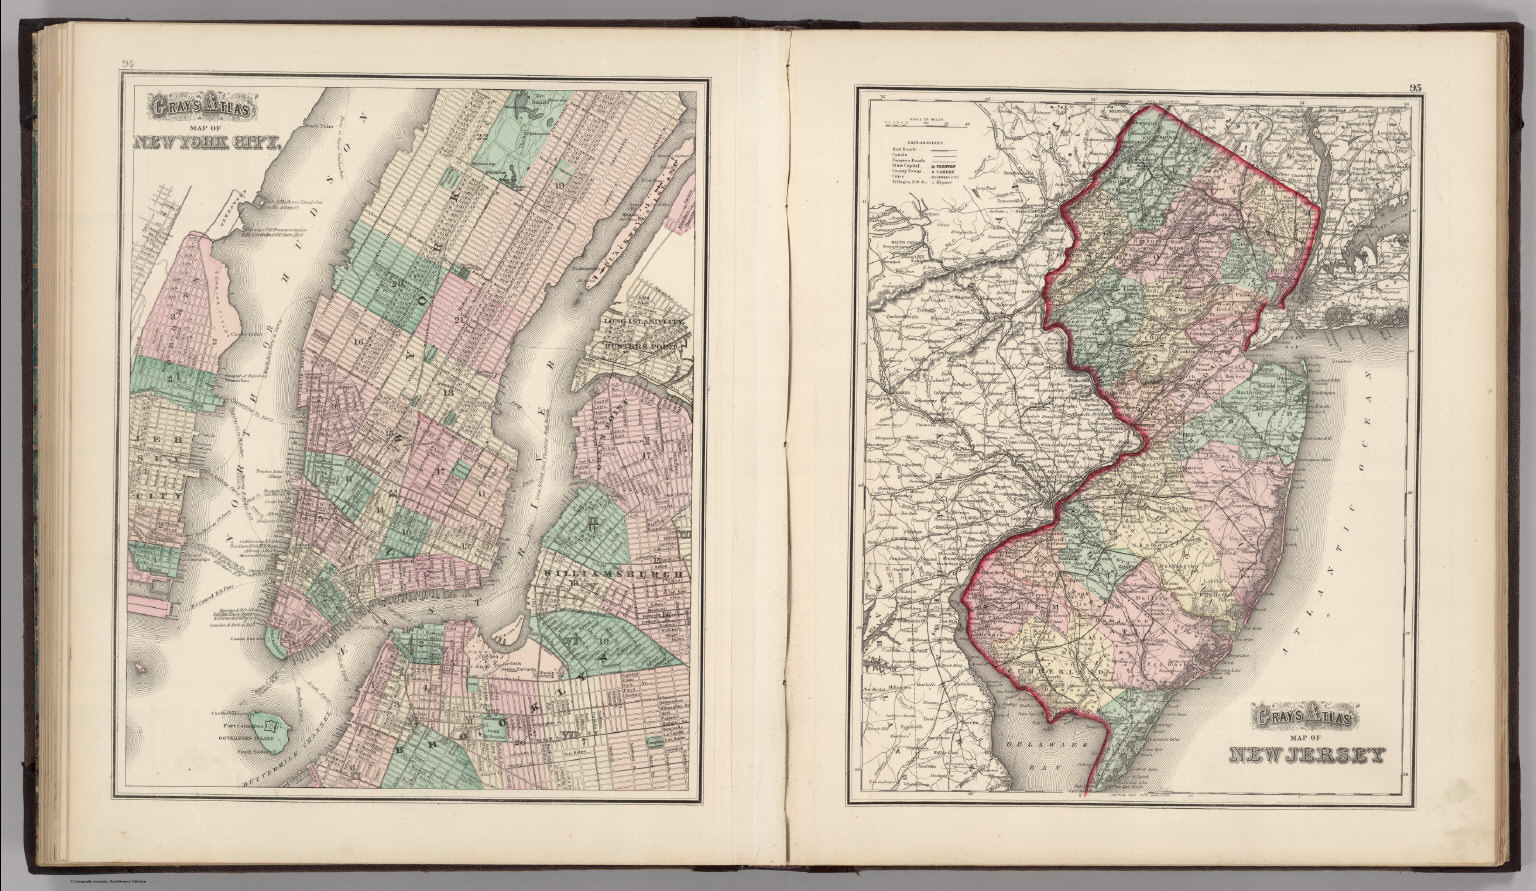 New York City New Jersey David Rumsey Historical Map Collection